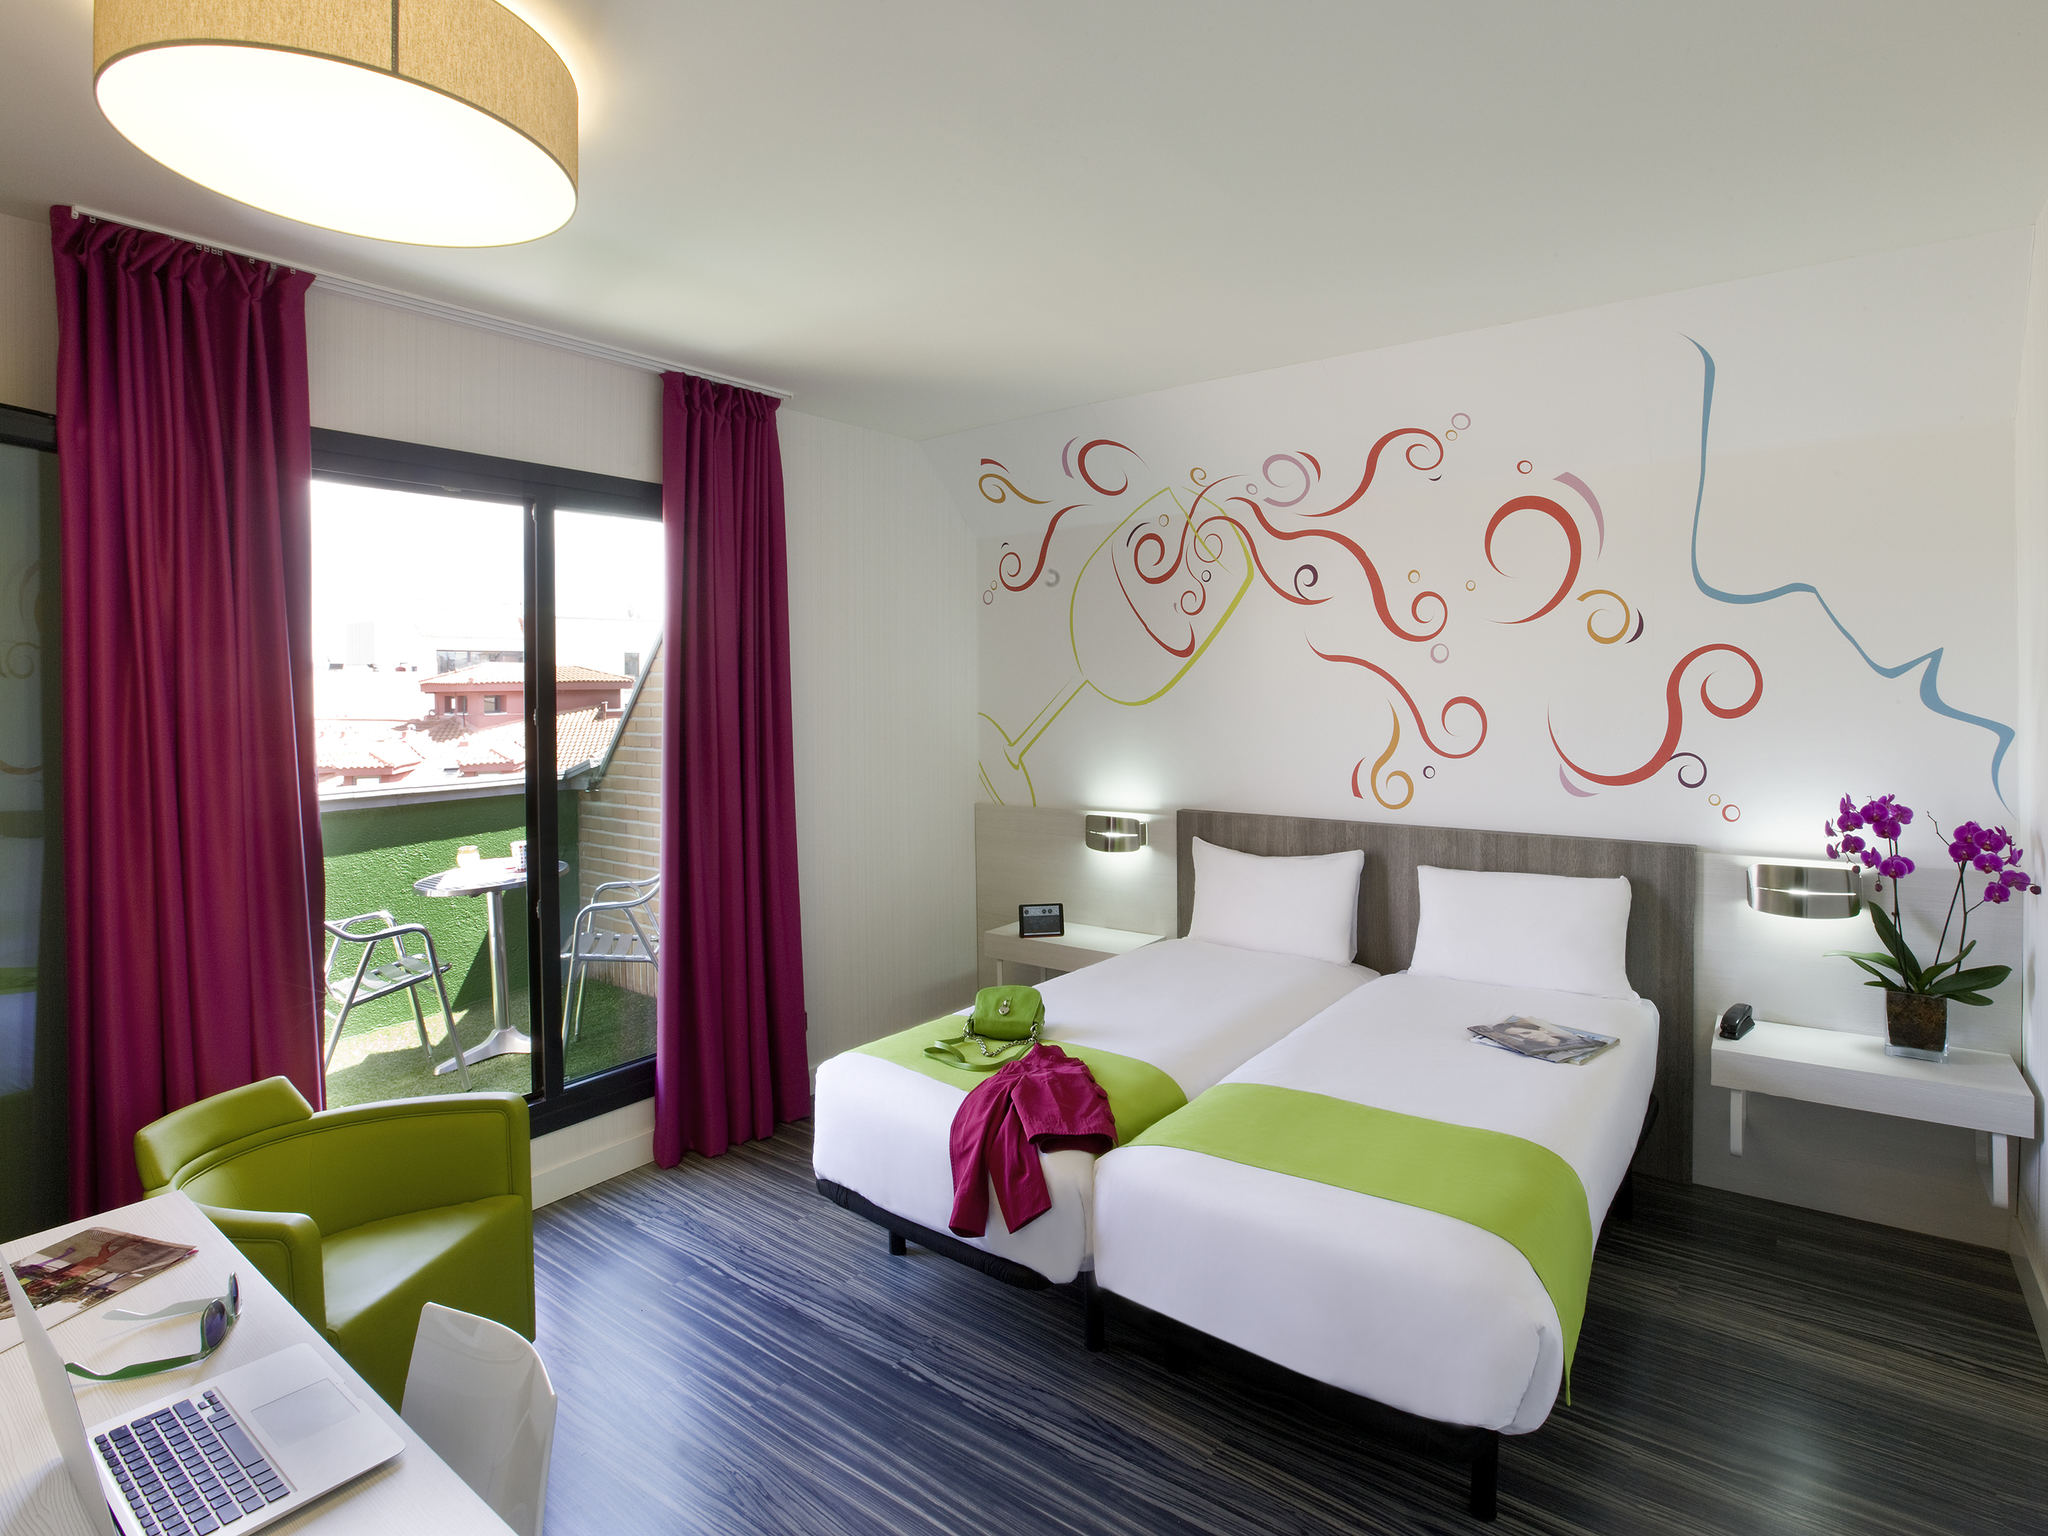 Ibis styles madrid hoteles en madrid accorhyles madrid for Hoteles vanguardistas en madrid